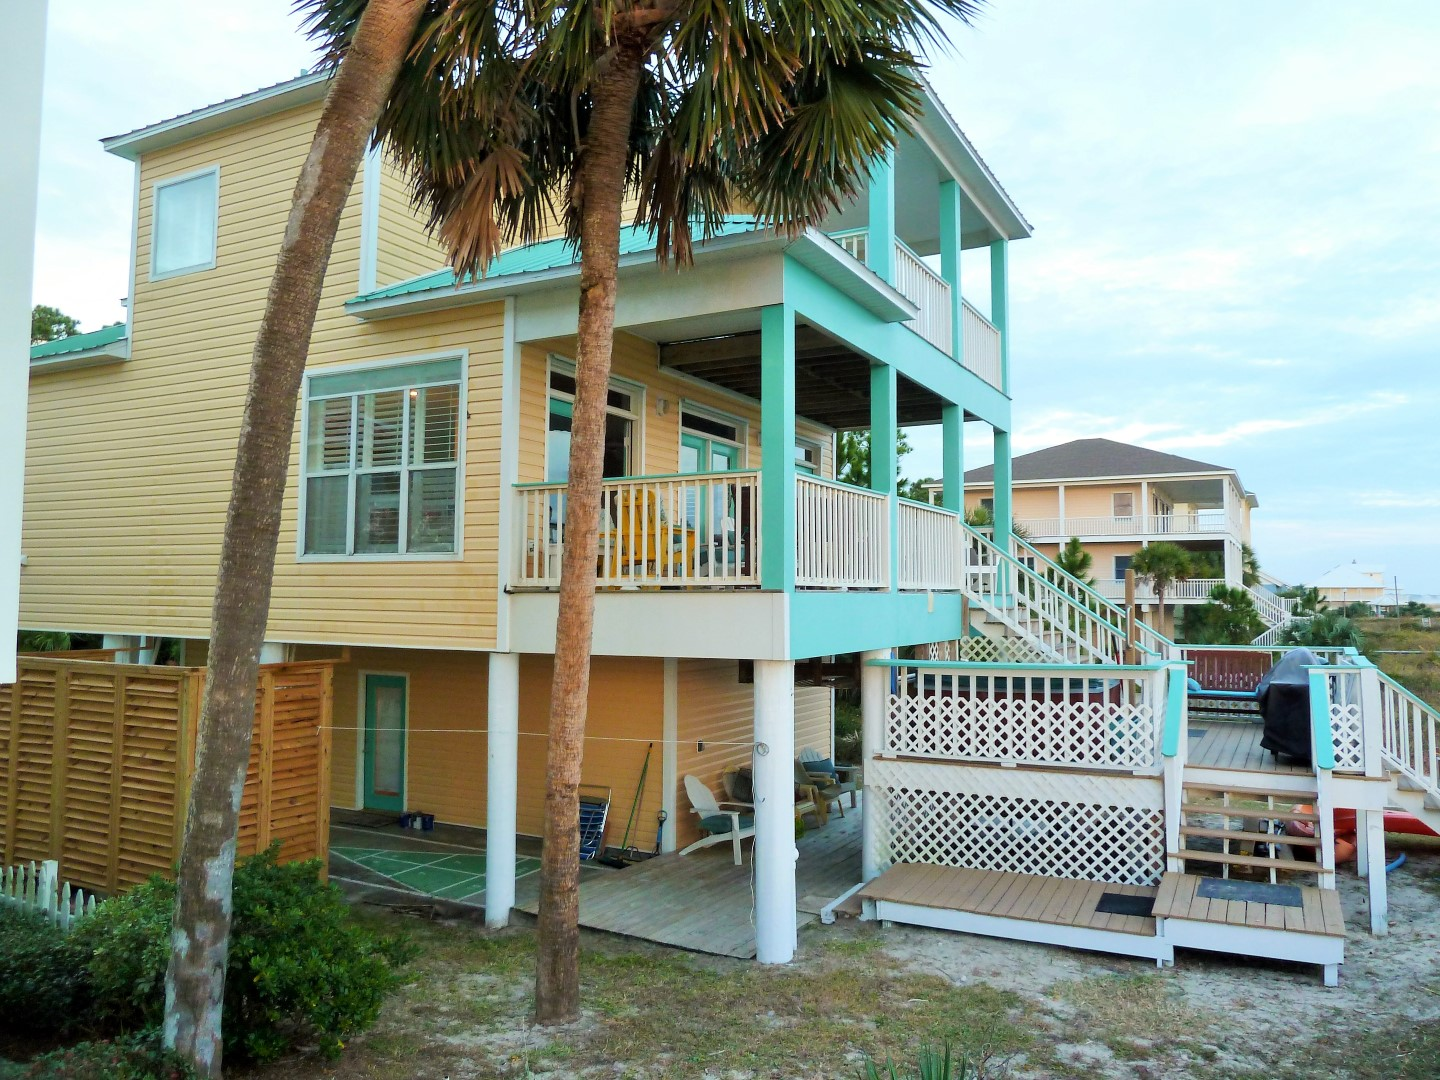 Side View of Two Palms and Four Front-Gulf Side Decks